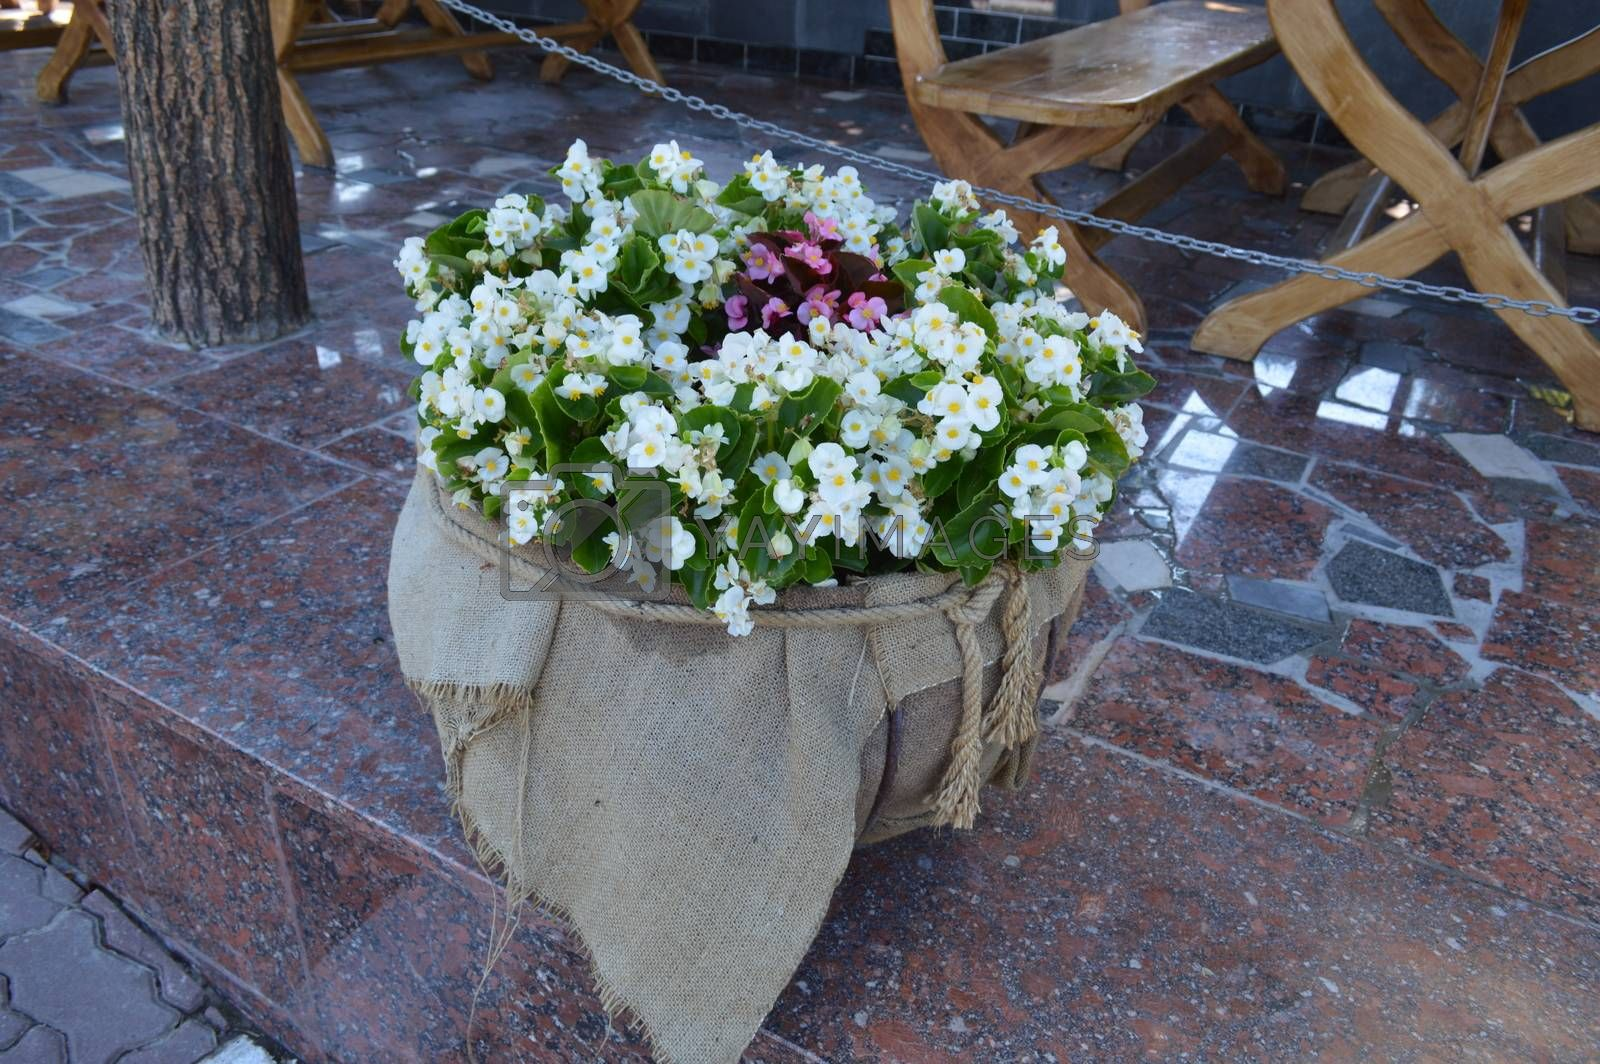 Flower bouquets in flowerpots of different compositions